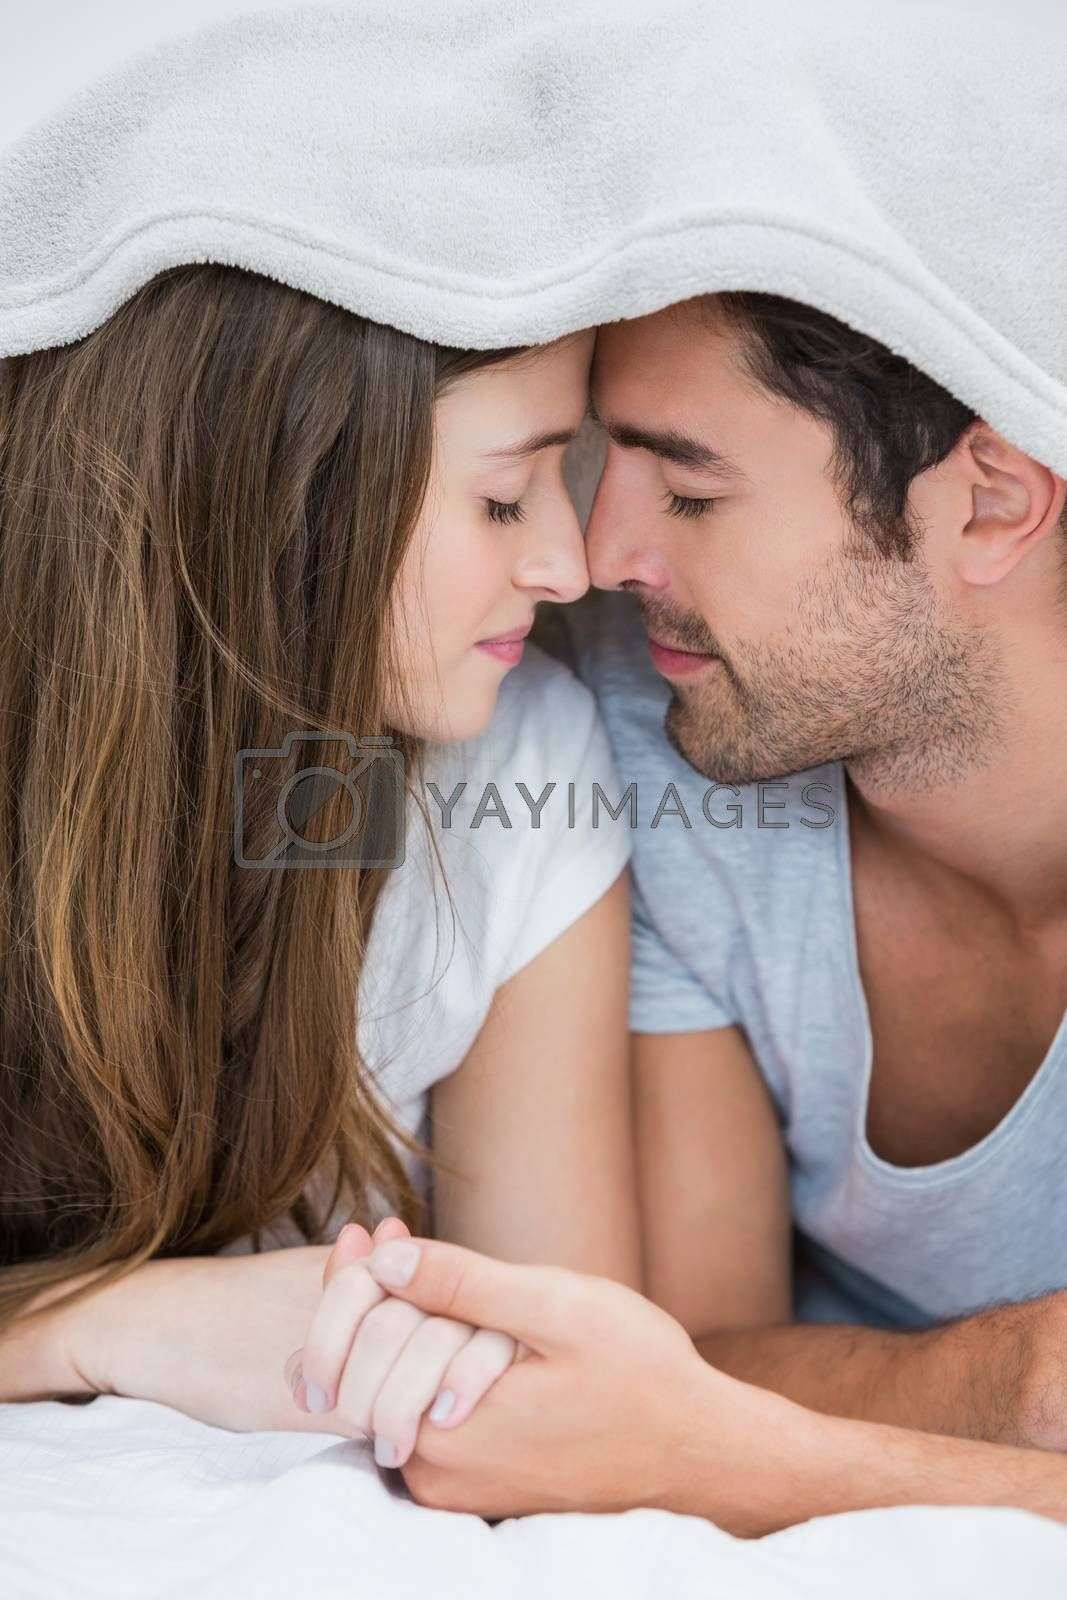 Close-up of couple romancing under blanket on bed at home